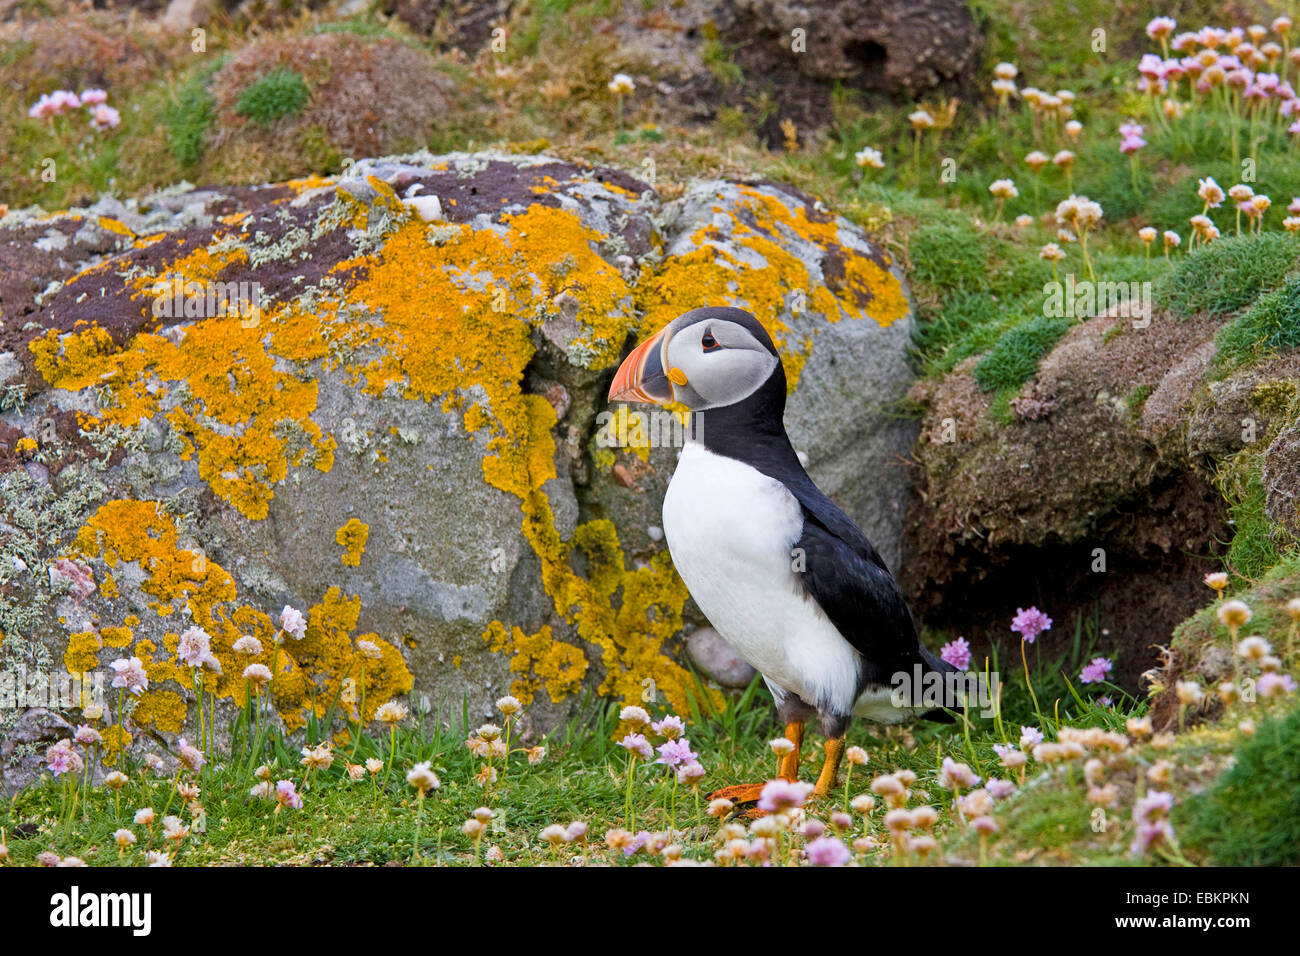 Atlantic puffin, Common puffin (Fratercula arctica), standing in front of its breeding cave, United Kingdom, Scotland, - Stock Image